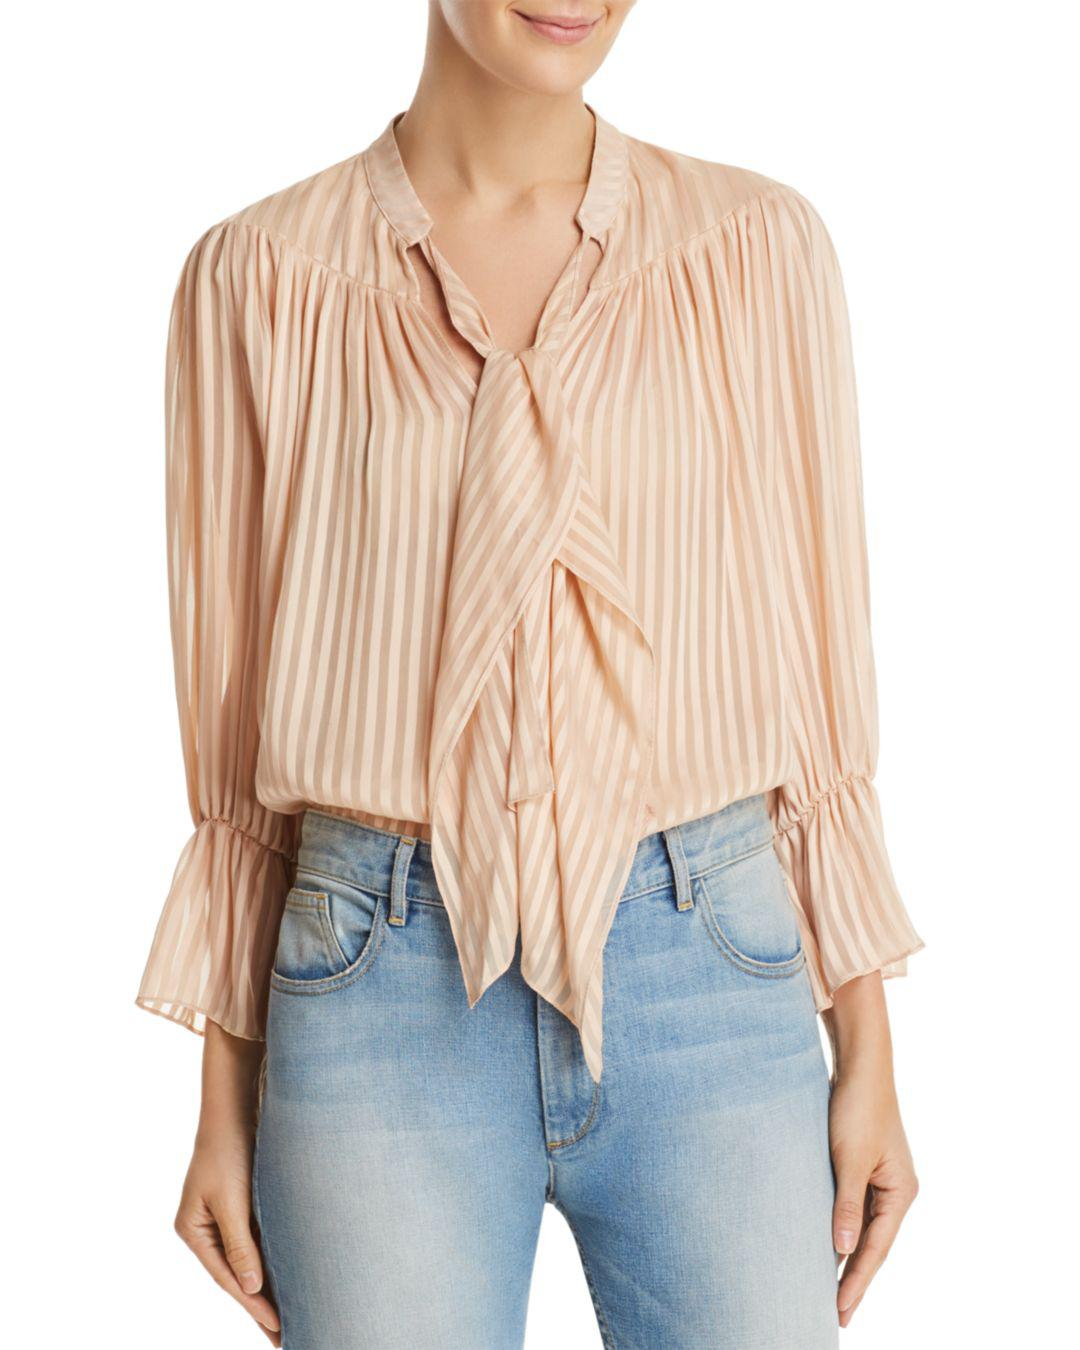 c94798d29cf5bf Alice + Olivia Alice + Olivia Danika Striped Tie-neck Top in Natural ...